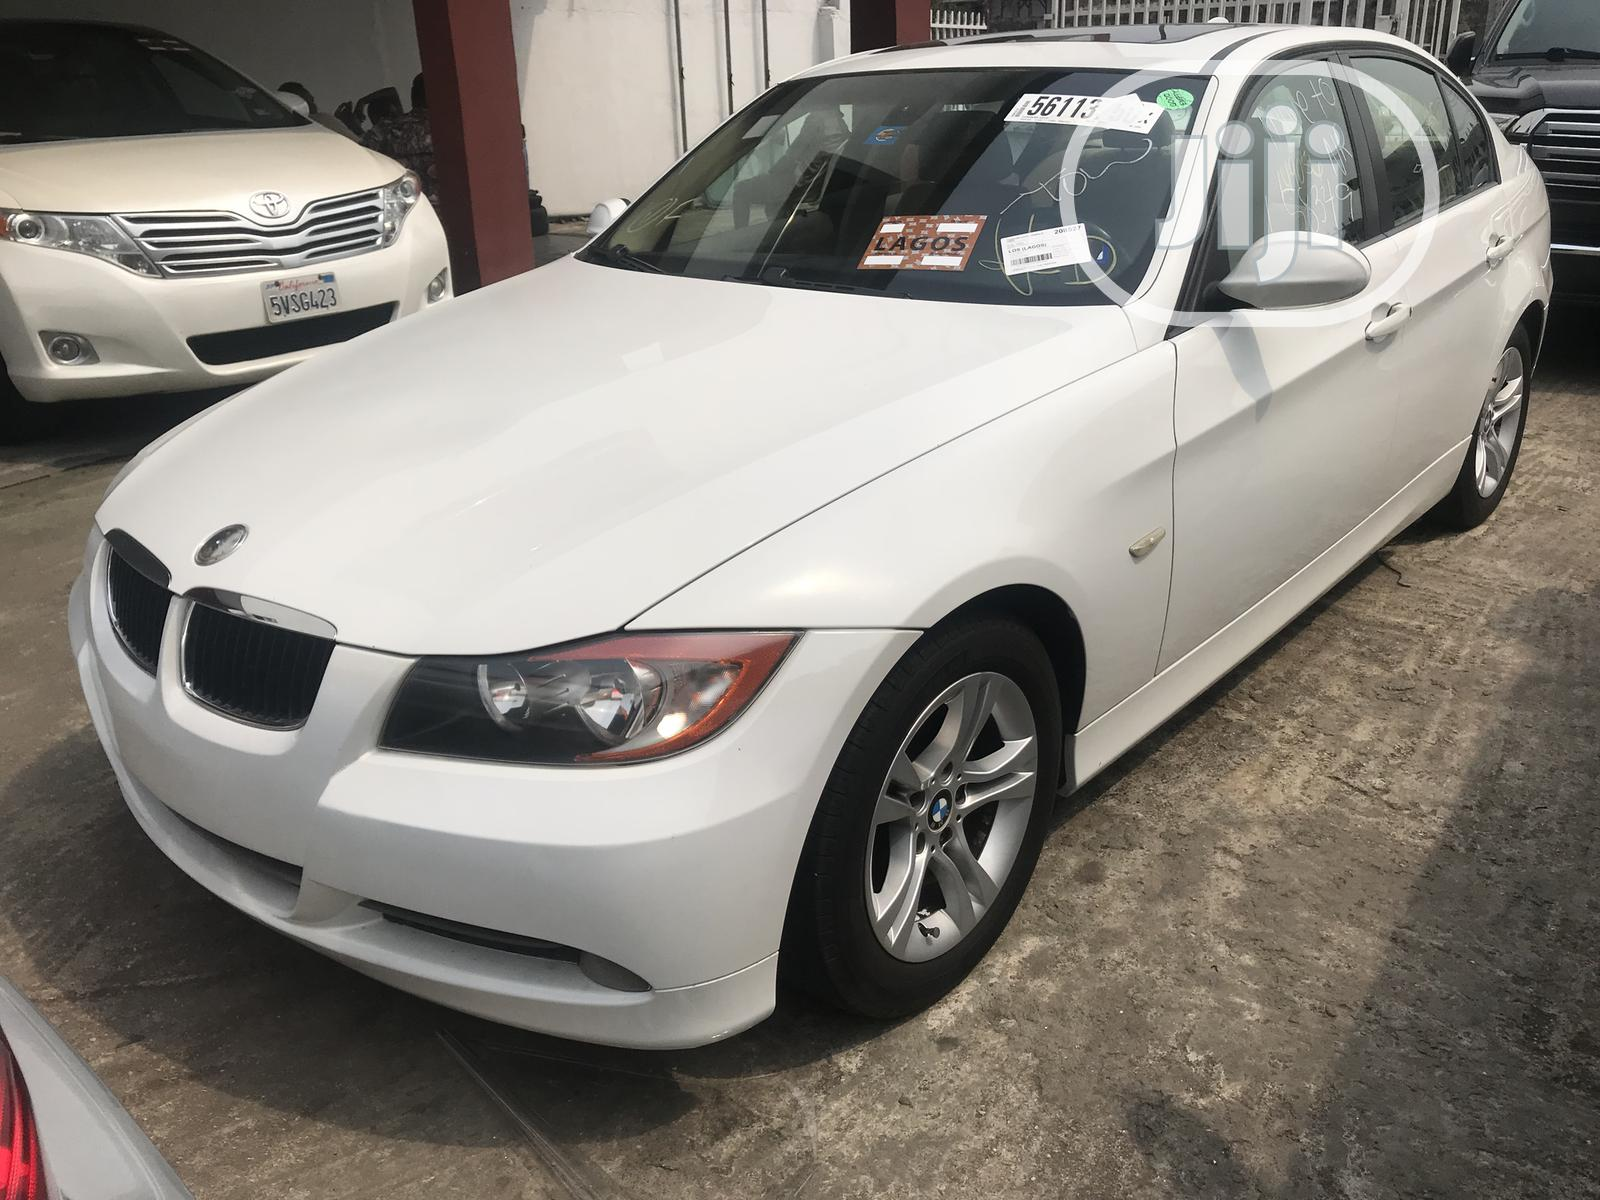 BMW 328i 2009 White | Cars for sale in Ikeja, Lagos State, Nigeria